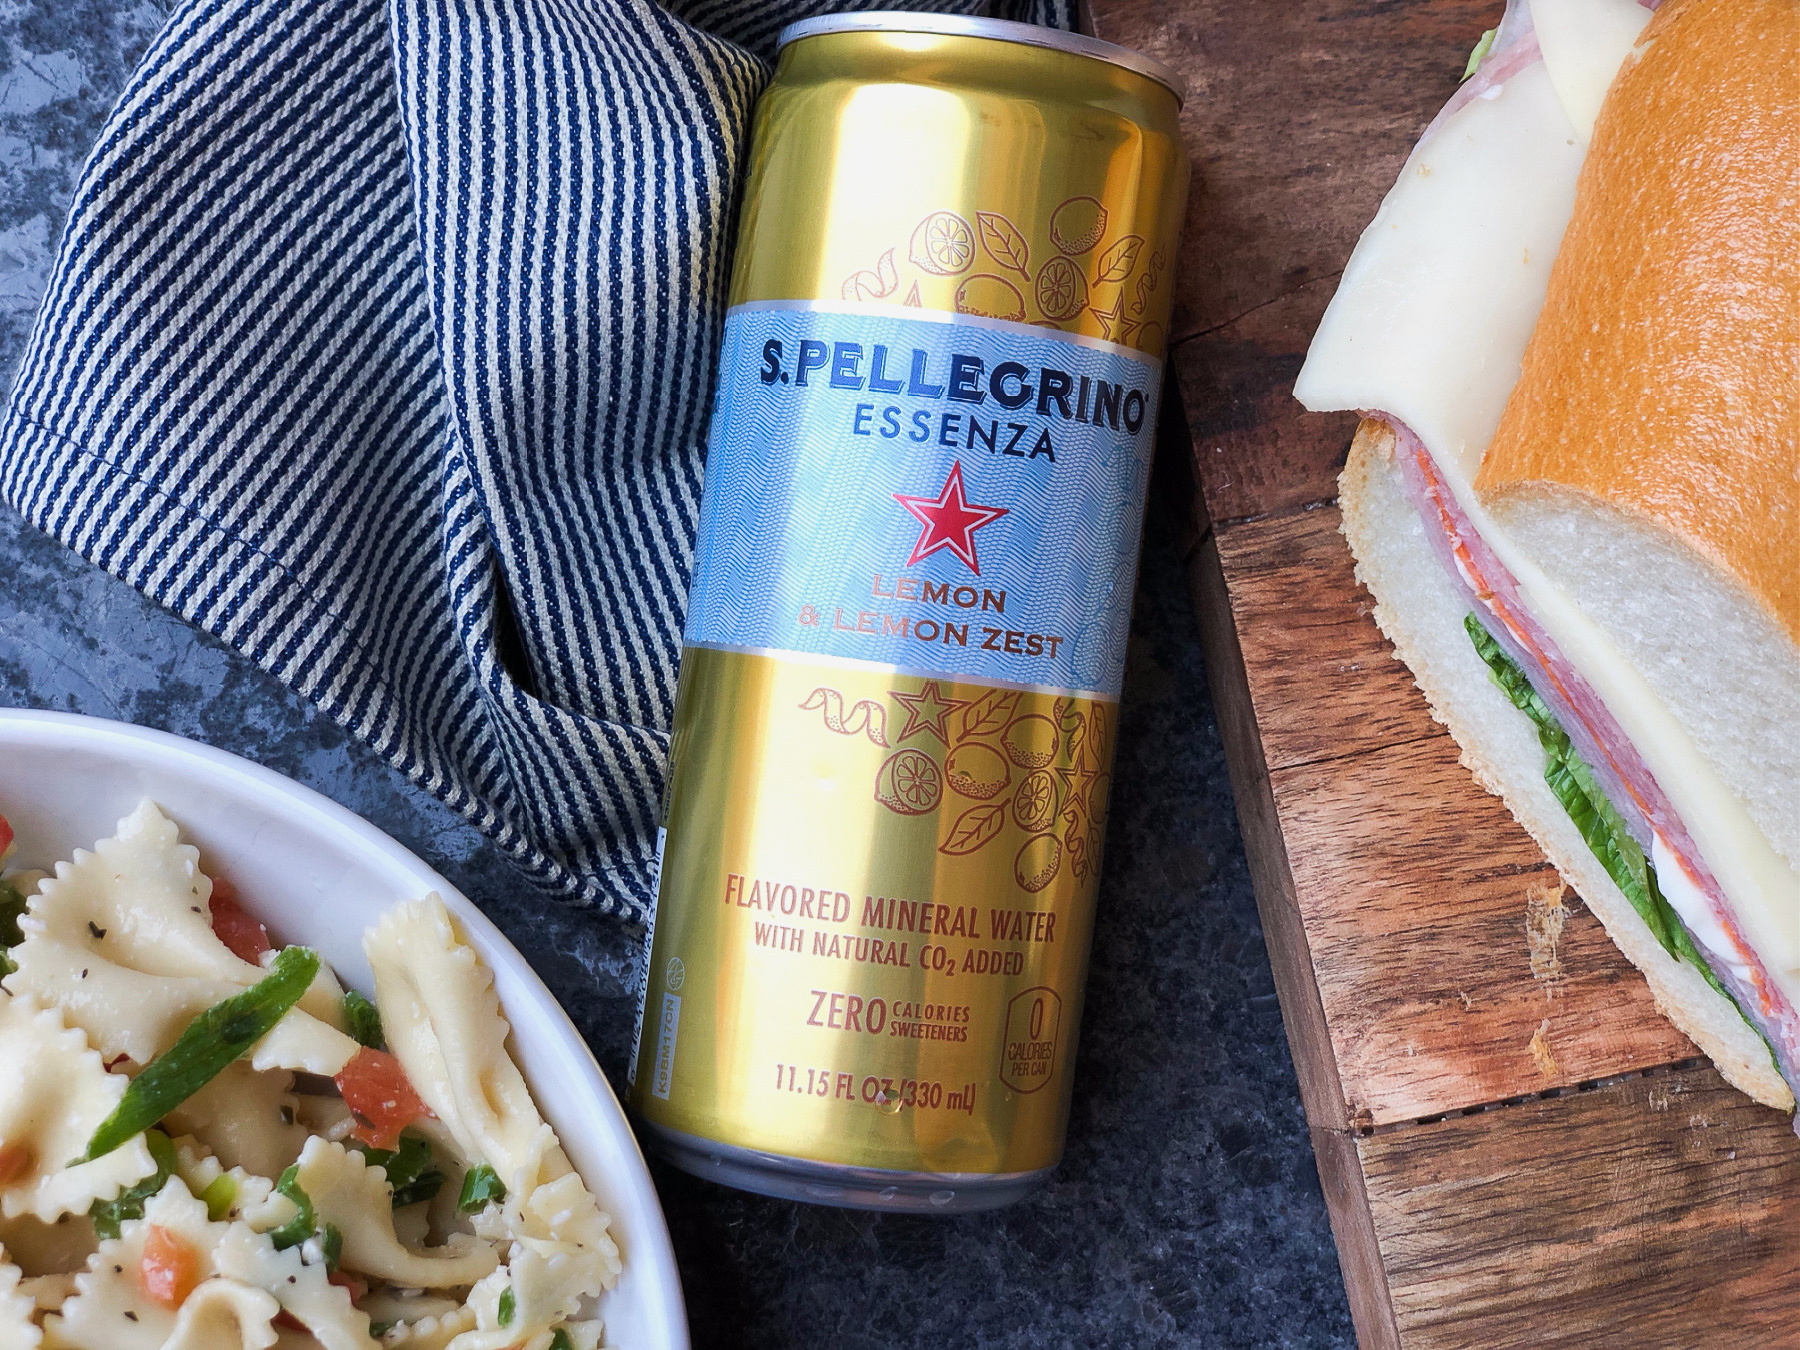 Add A Twist Of Flavor To Your Day With S.Pellegrino Essenza - Available At Publix on I Heart Publix 3